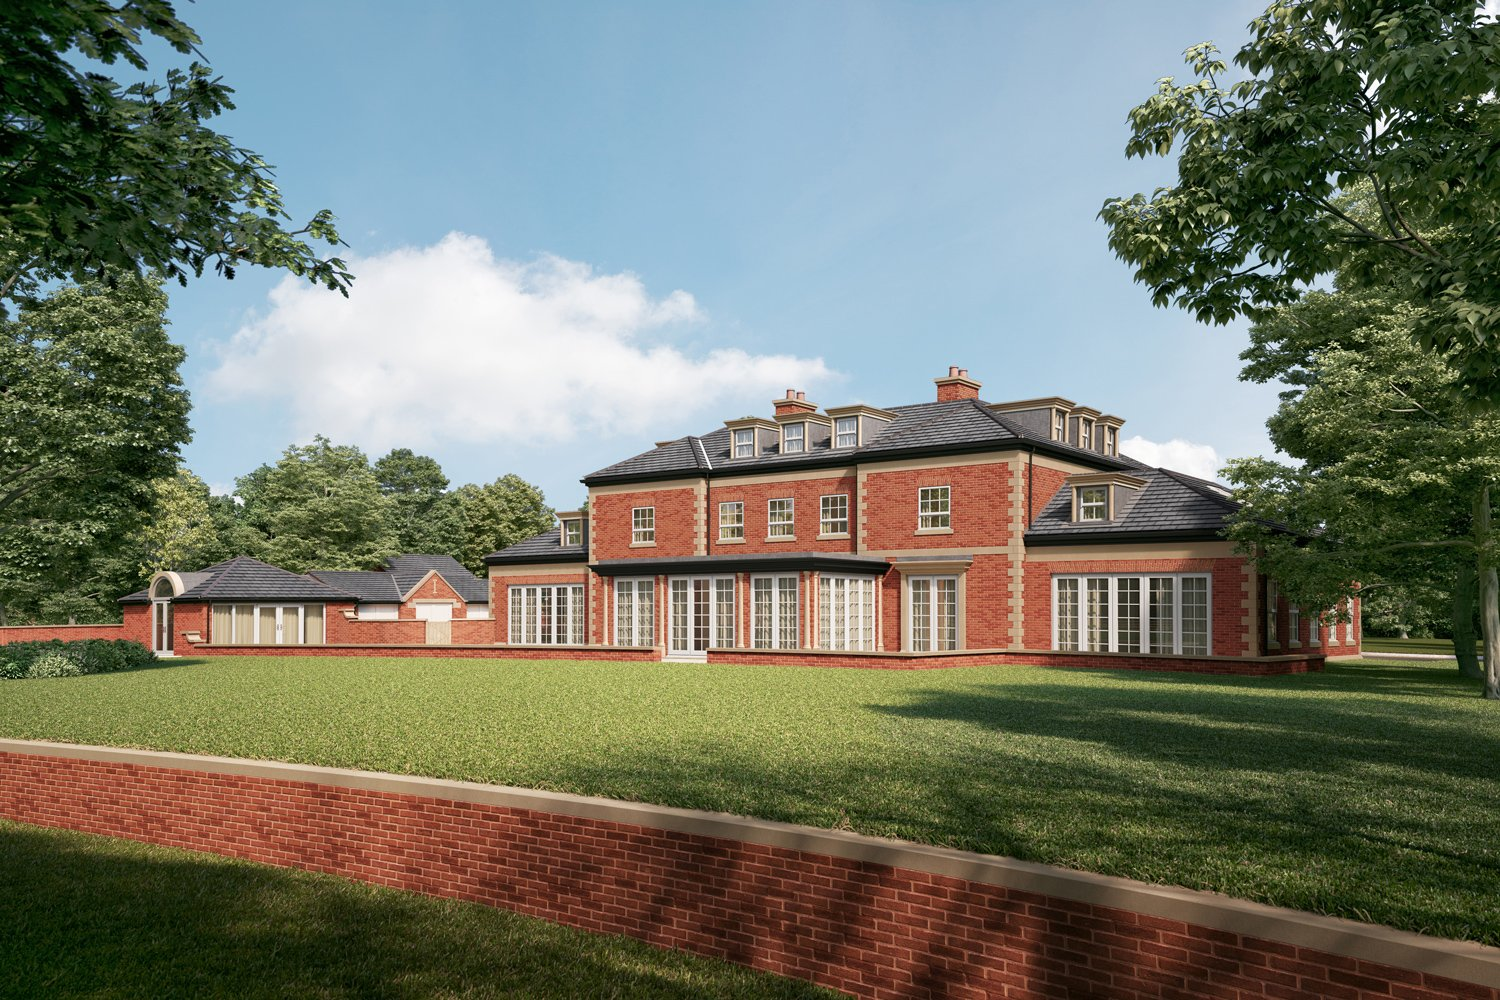 A back view of the impressive Chaseley Farm building, with a view of the summerhouse, lawns and surrounding brick walls.